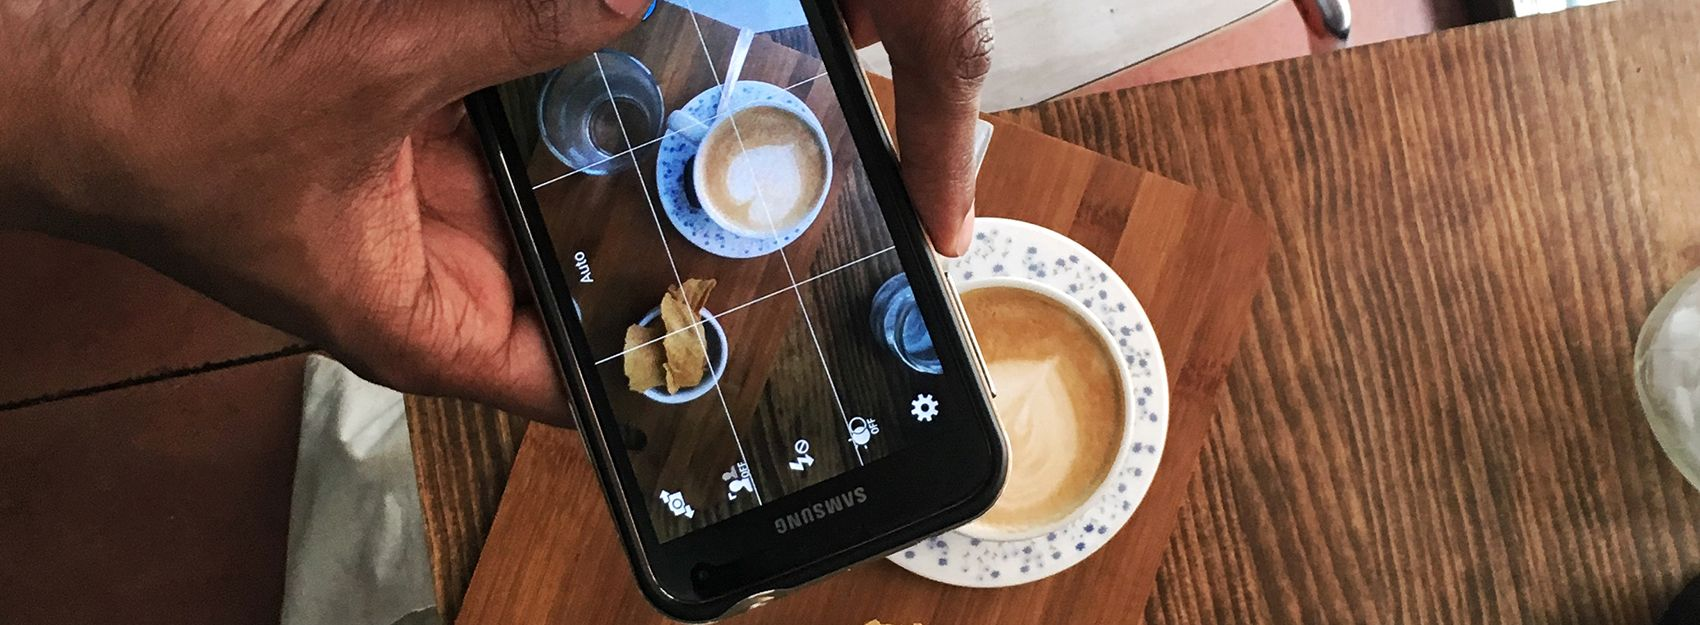 hands holding a phone taking a photo of a cup of coffee